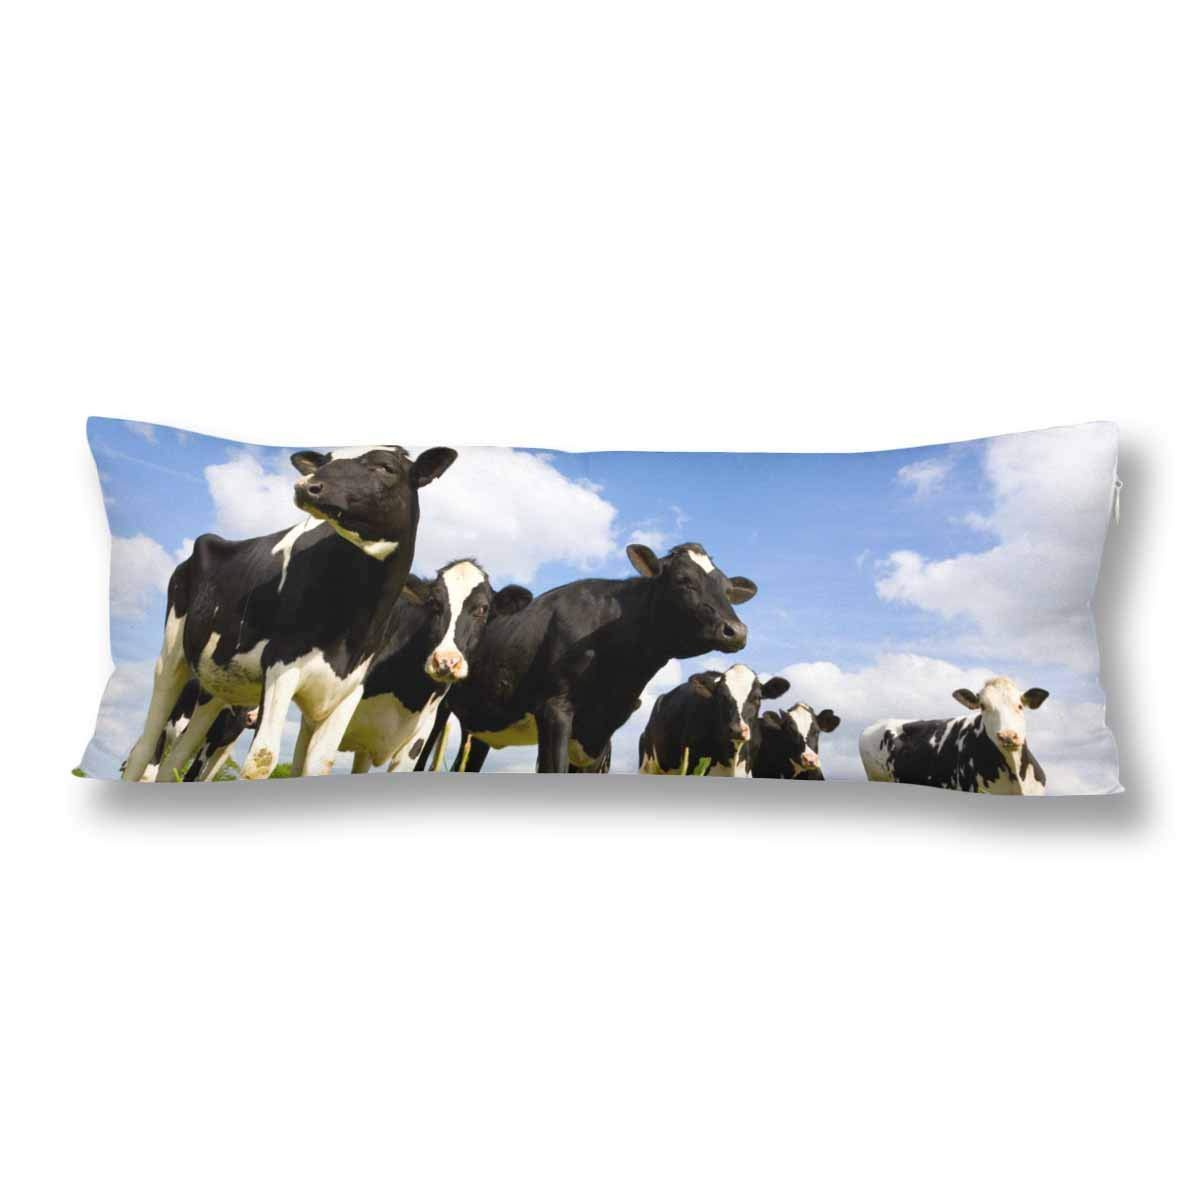 ABPHOTO Holstein Cow in the Meadow Body Pillow Covers Pillowcase 20x60 inch Blue Sky Body Pillow Case Protector